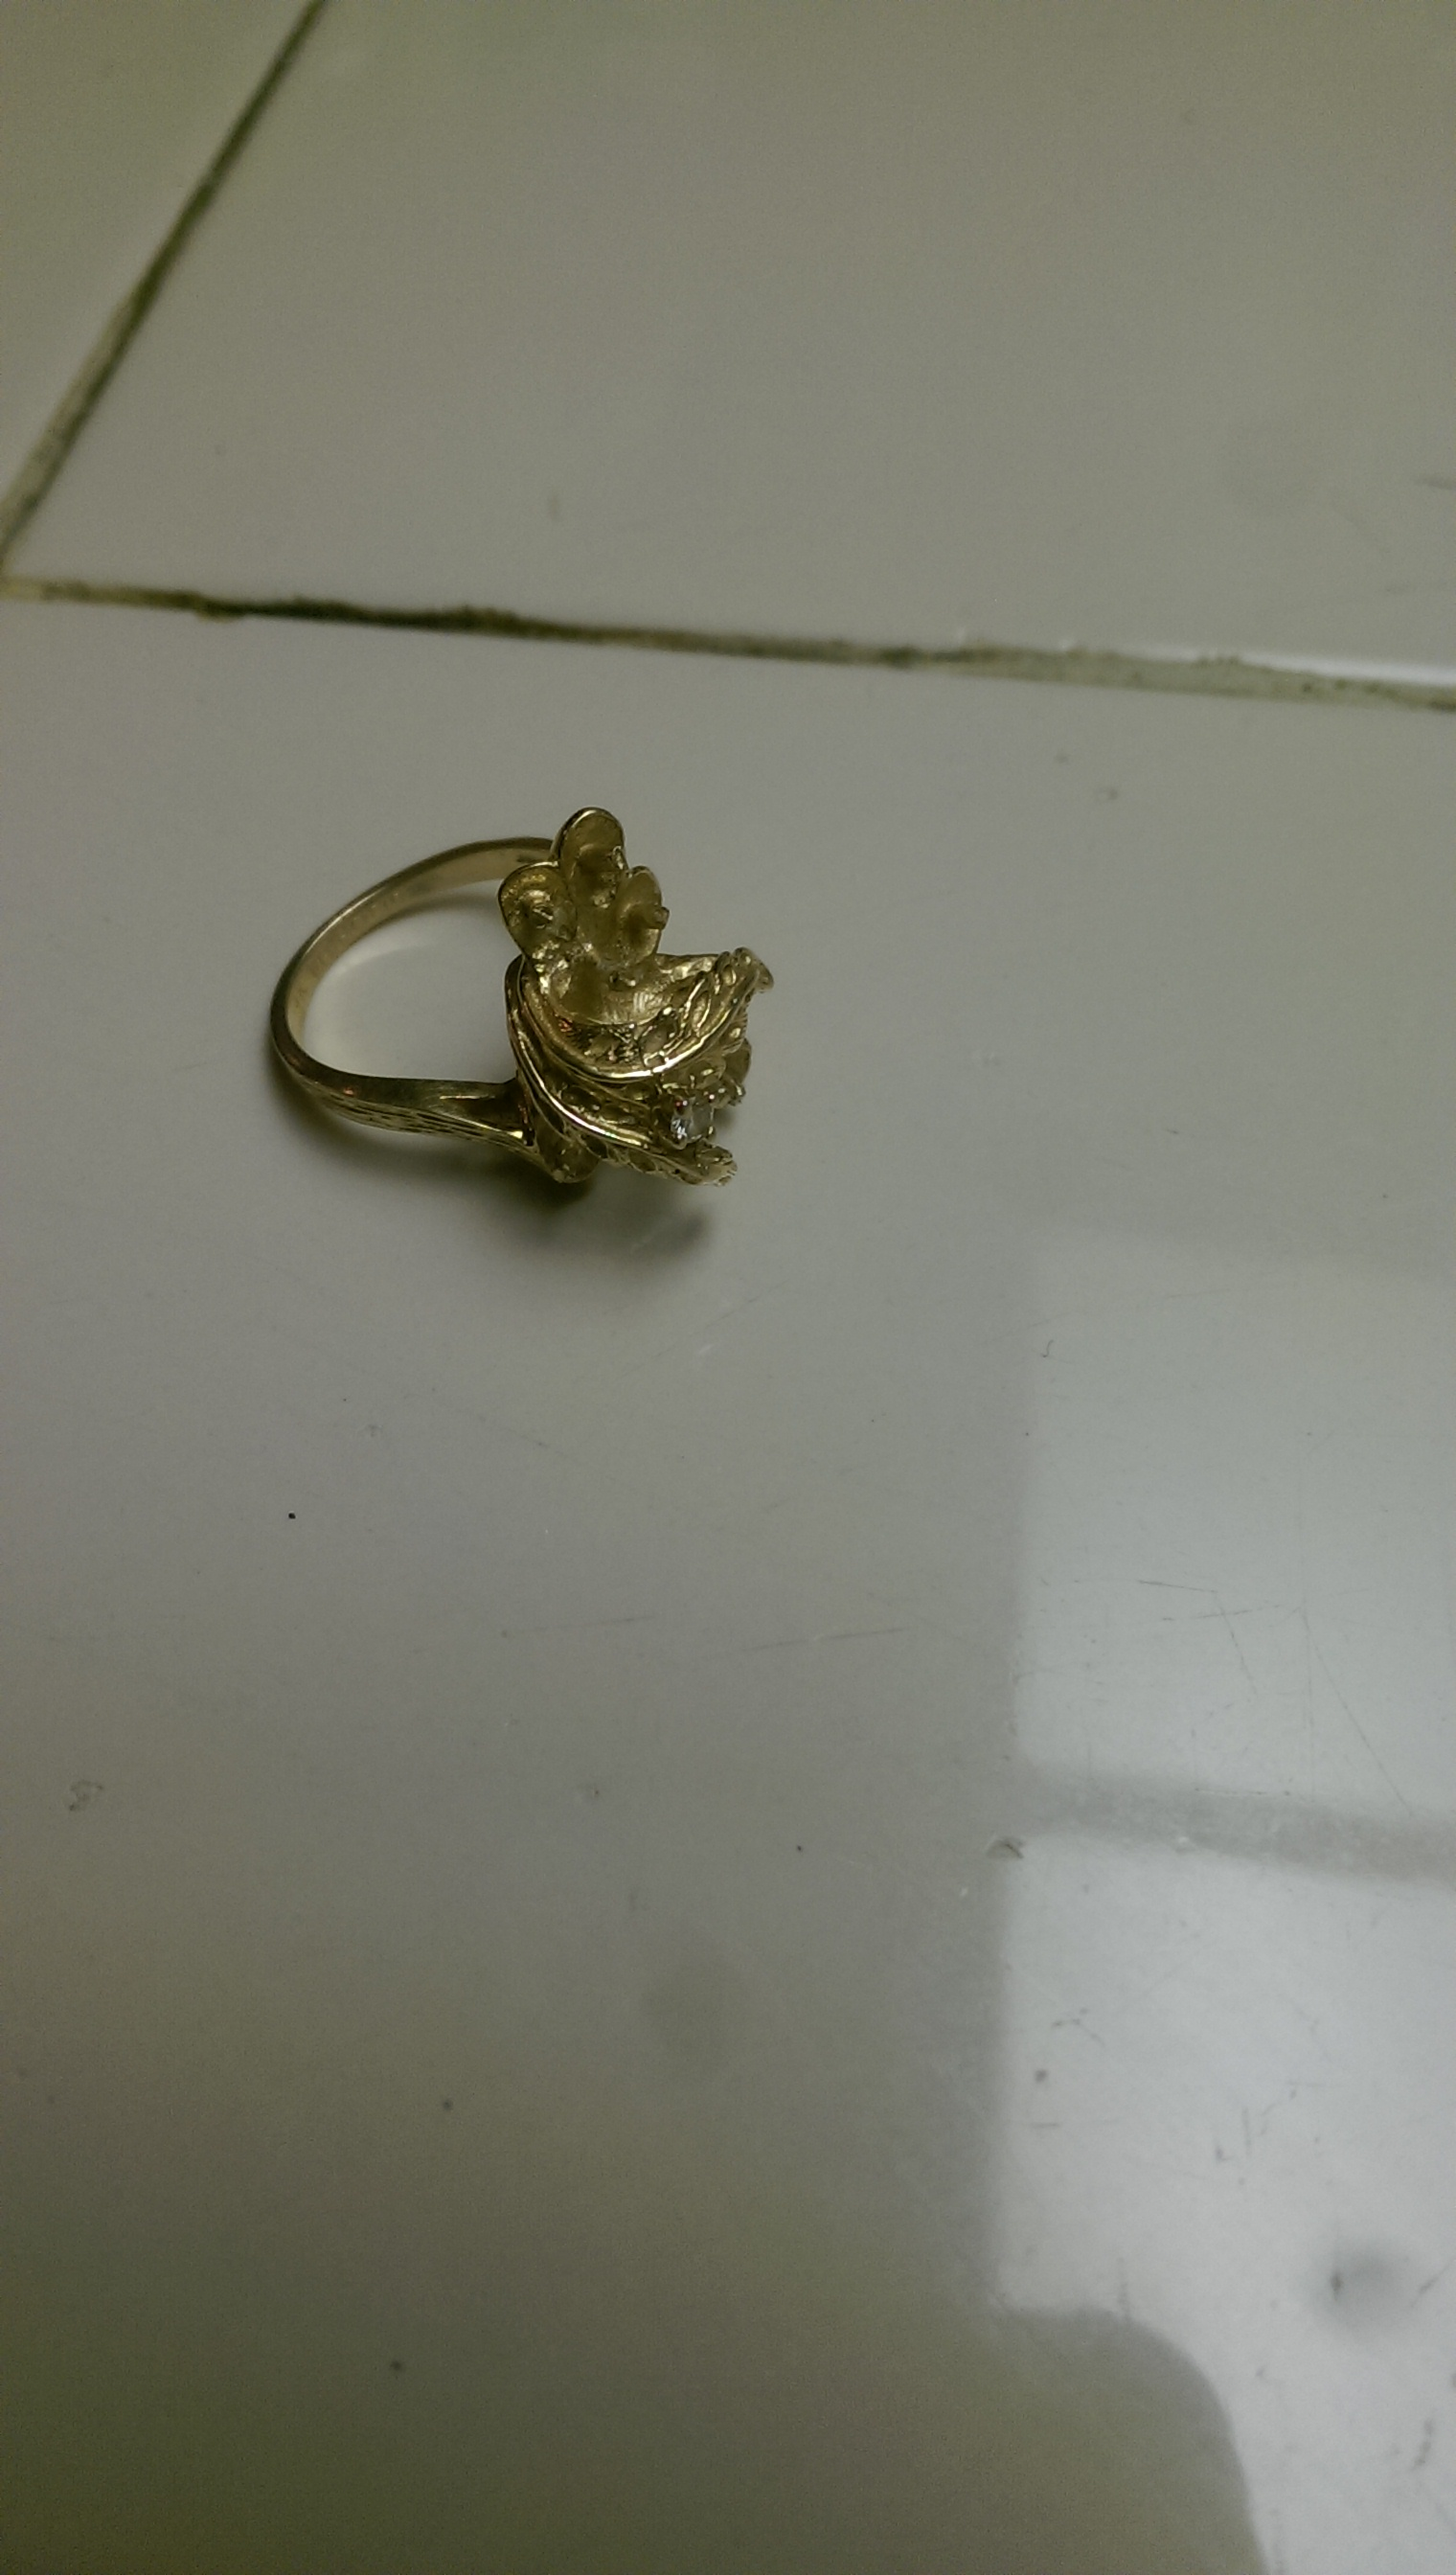 c67c06ad4e45 18k gold ring picture Mar-10-2019 Country  United States For Sale ...